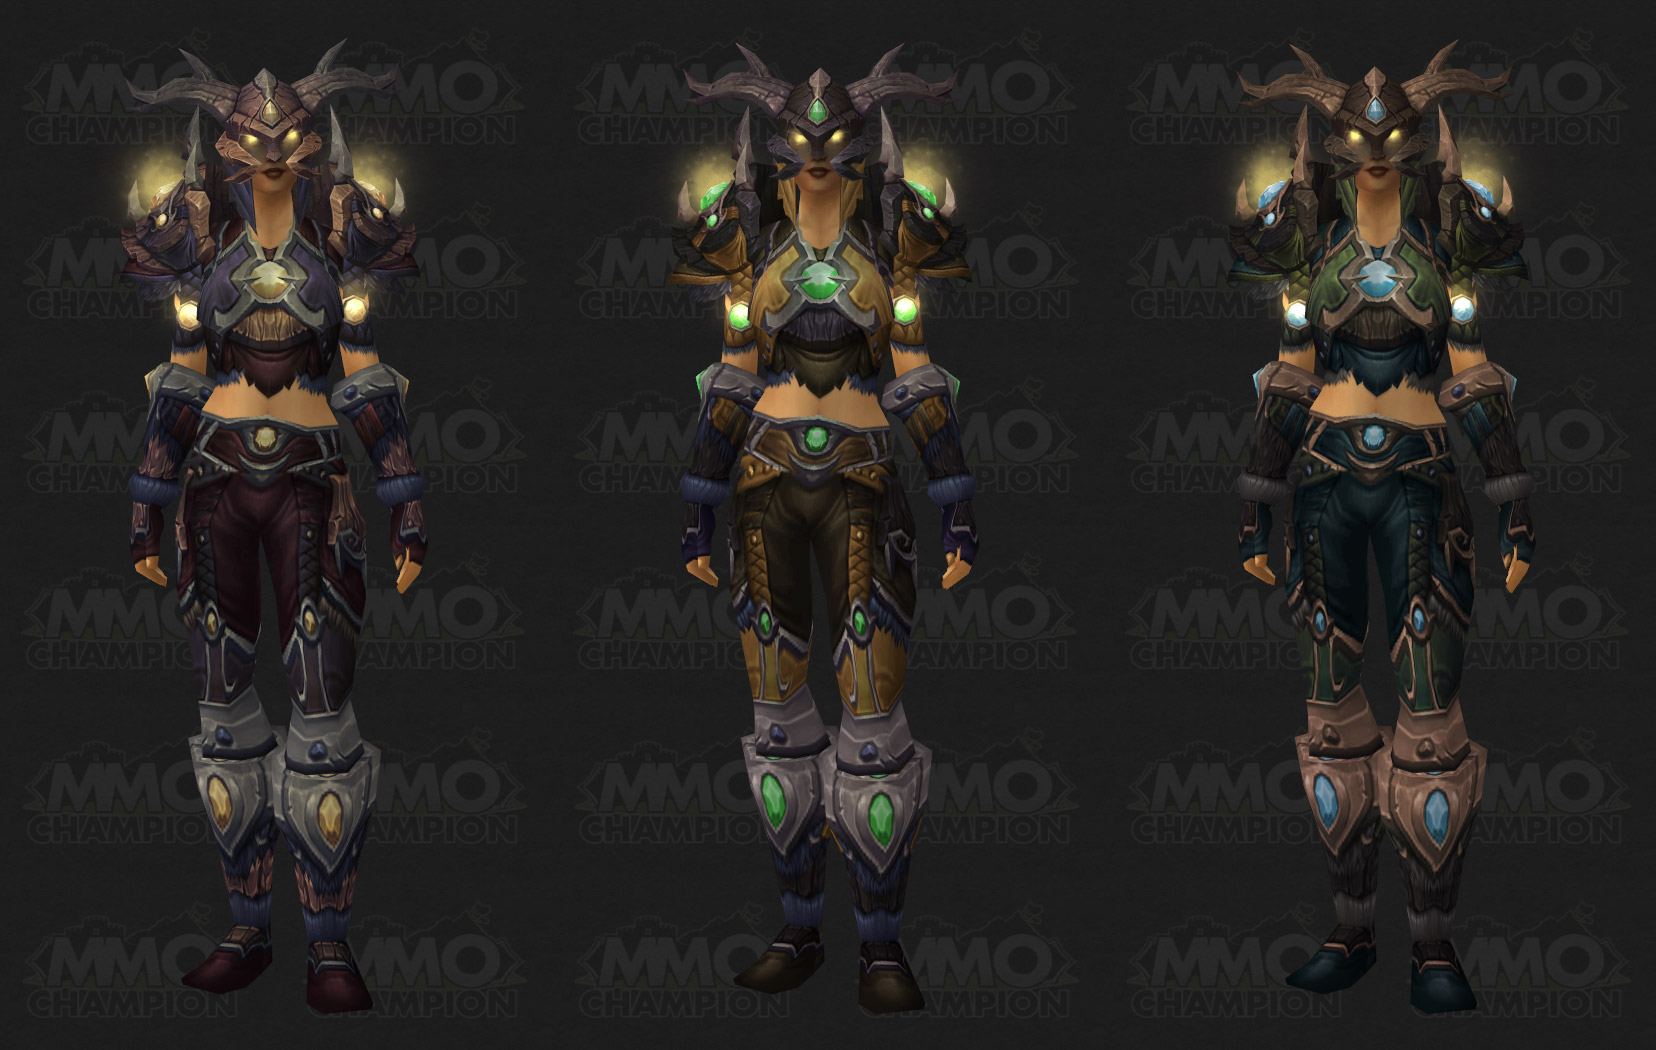 Warcraft armor skin mod anime picture